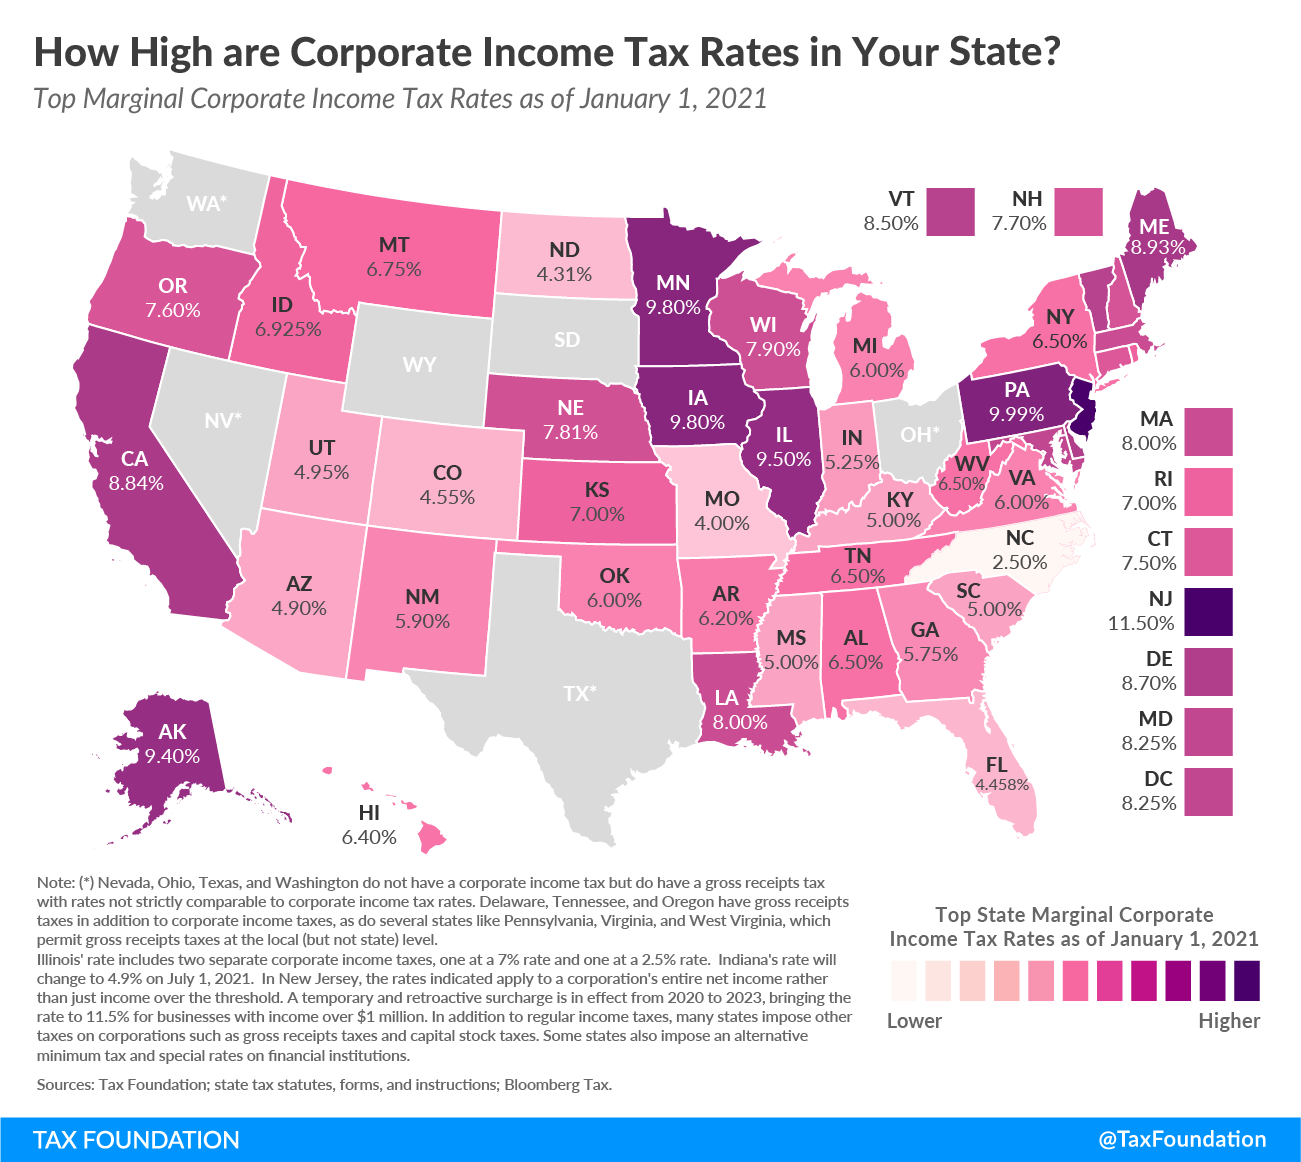 2021 state corporate income tax rates and brackets. 2021 state corporate tax rates. What are the state corporate tax rates for 2021? Which state has the lowest corporate tax rate? Lowest state corporate tax rate